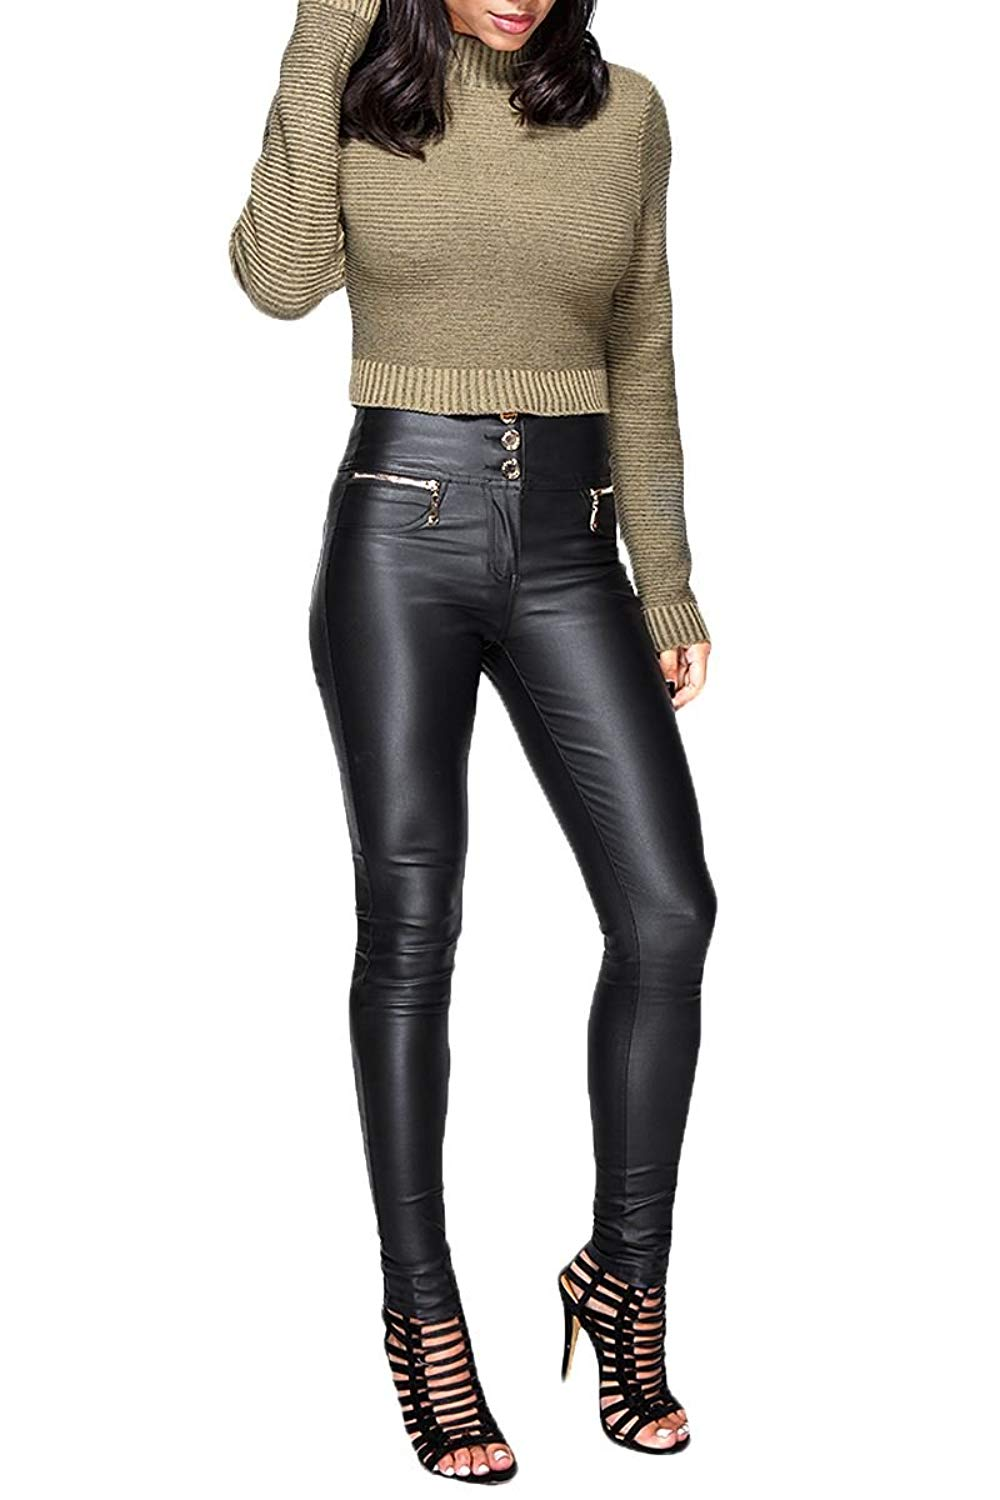 d740d4f0ff Shelikes Womens Sexy Wet Faux Leather Look Shiny PU Stretch High Waisted  Skinny Slim Fit Jeans